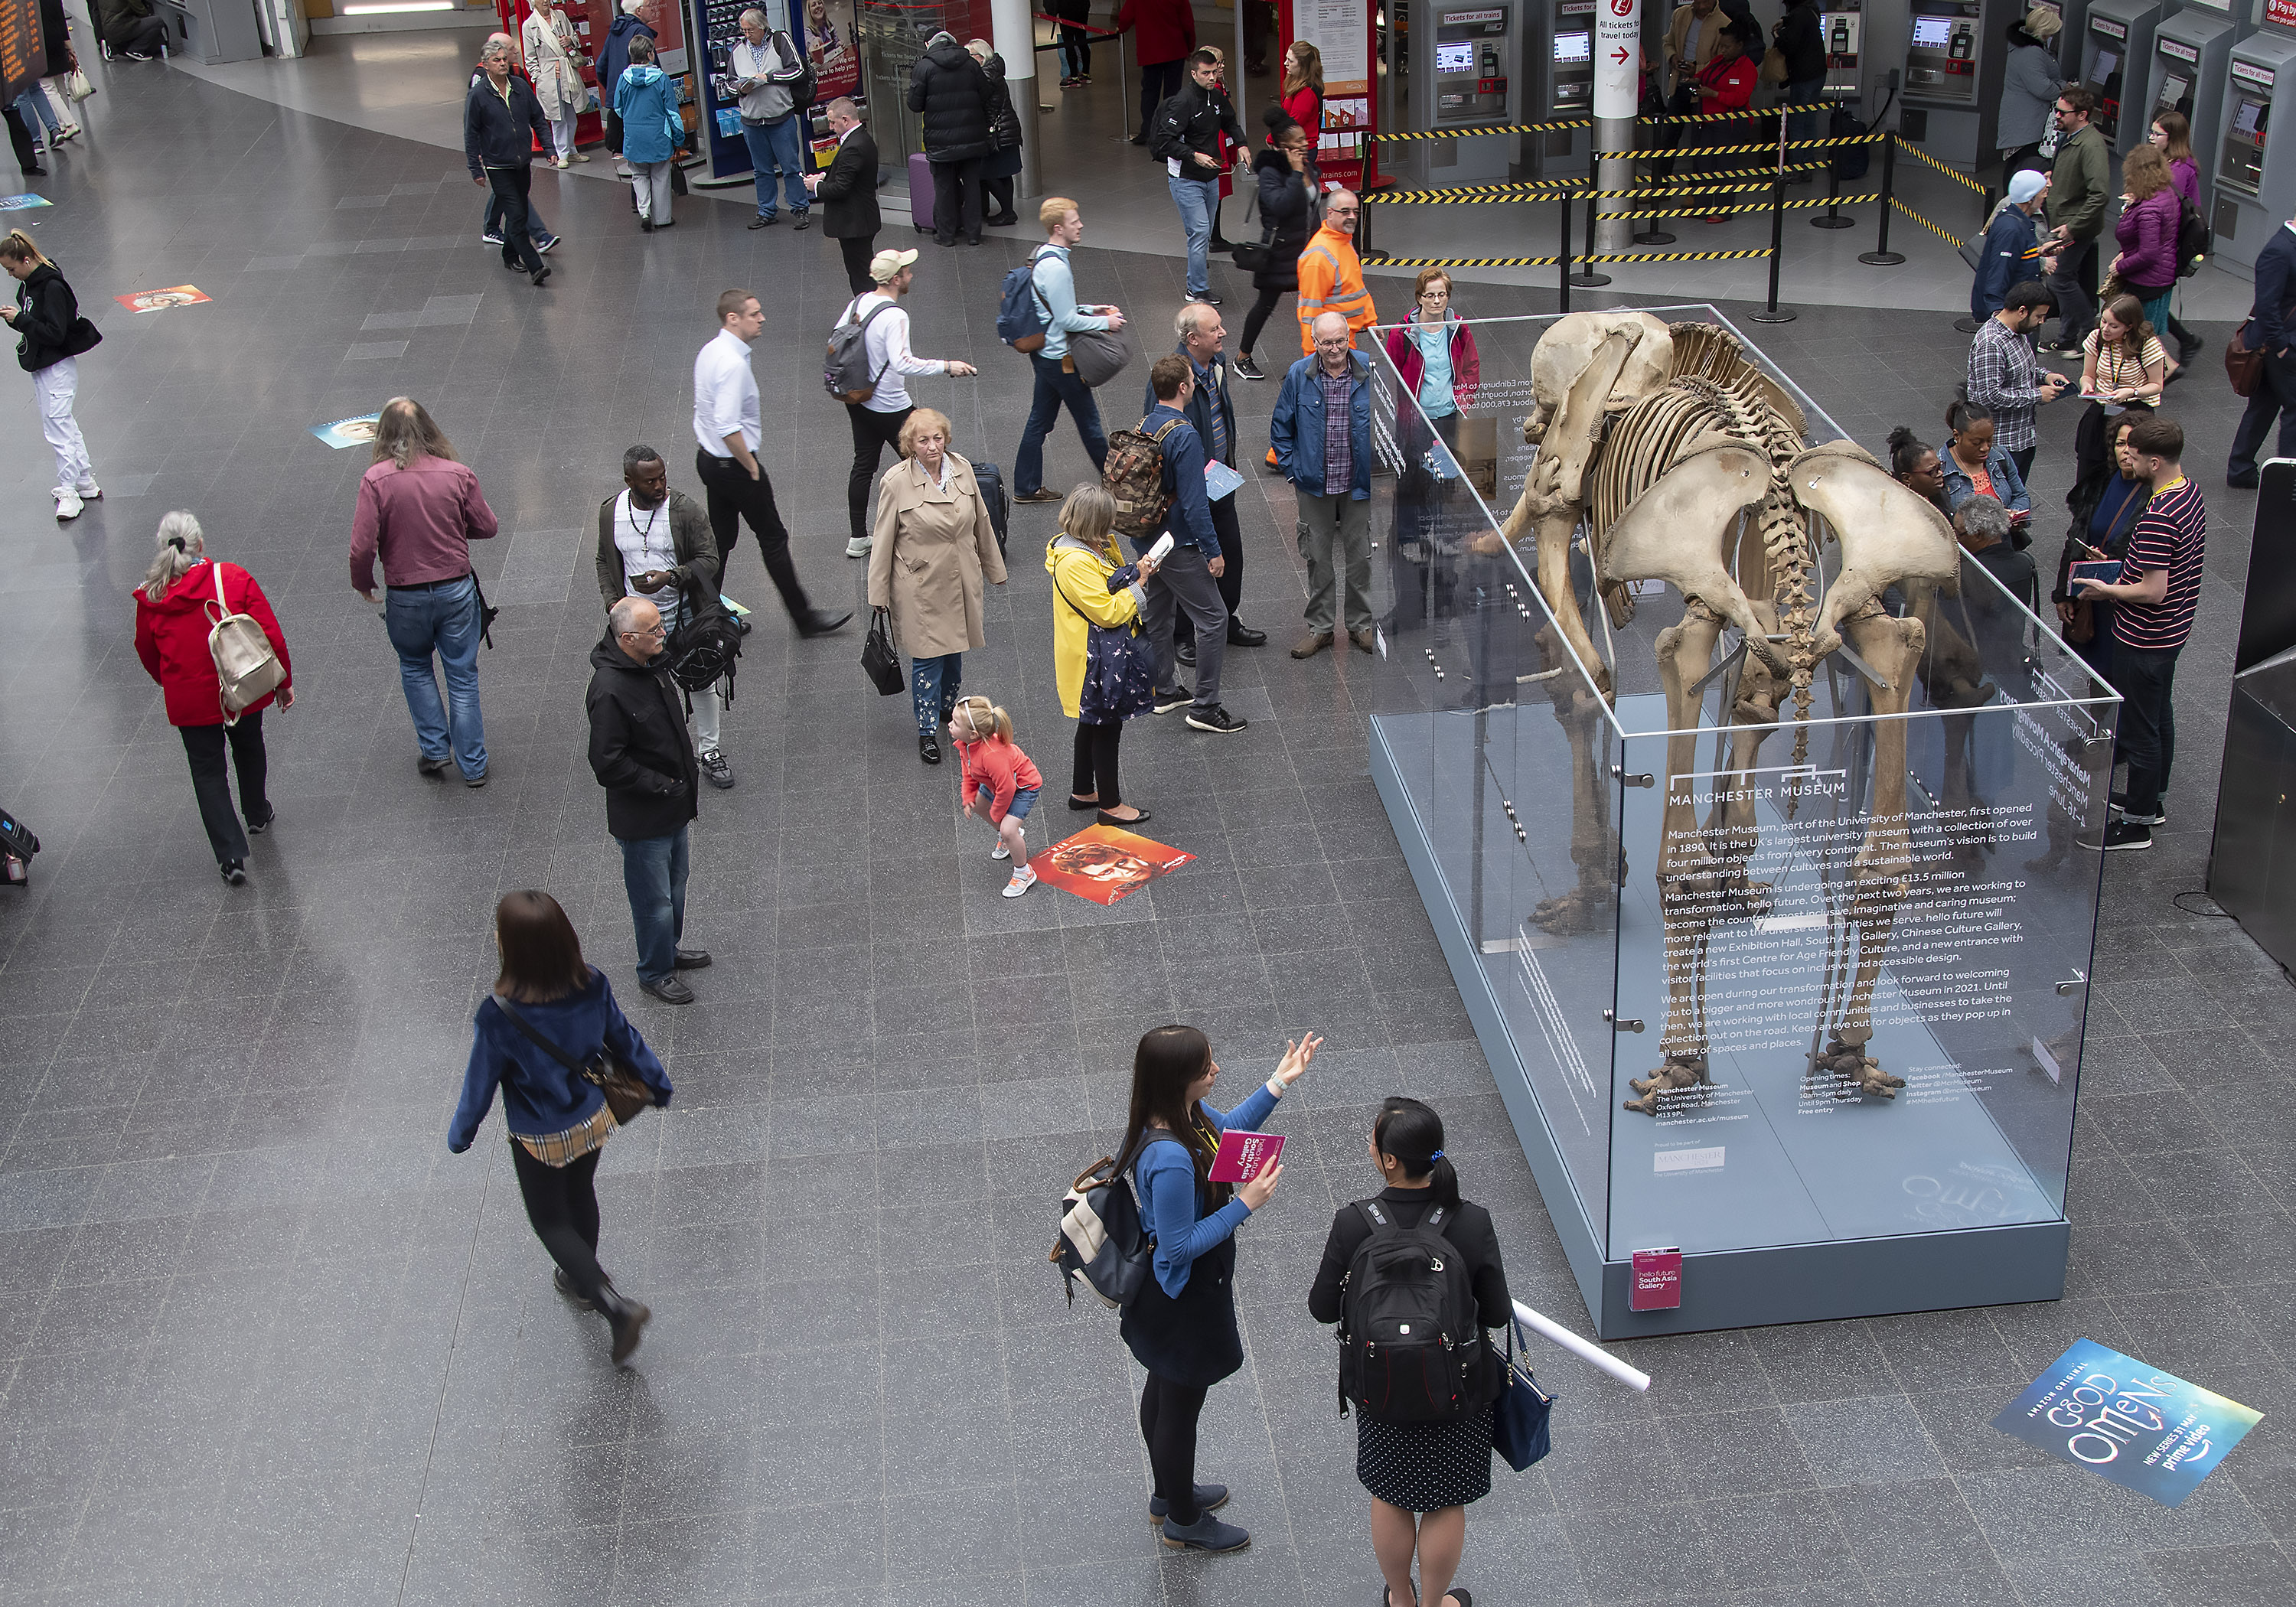 Consumers looking at the elephant in Manchester Piccadilly train station